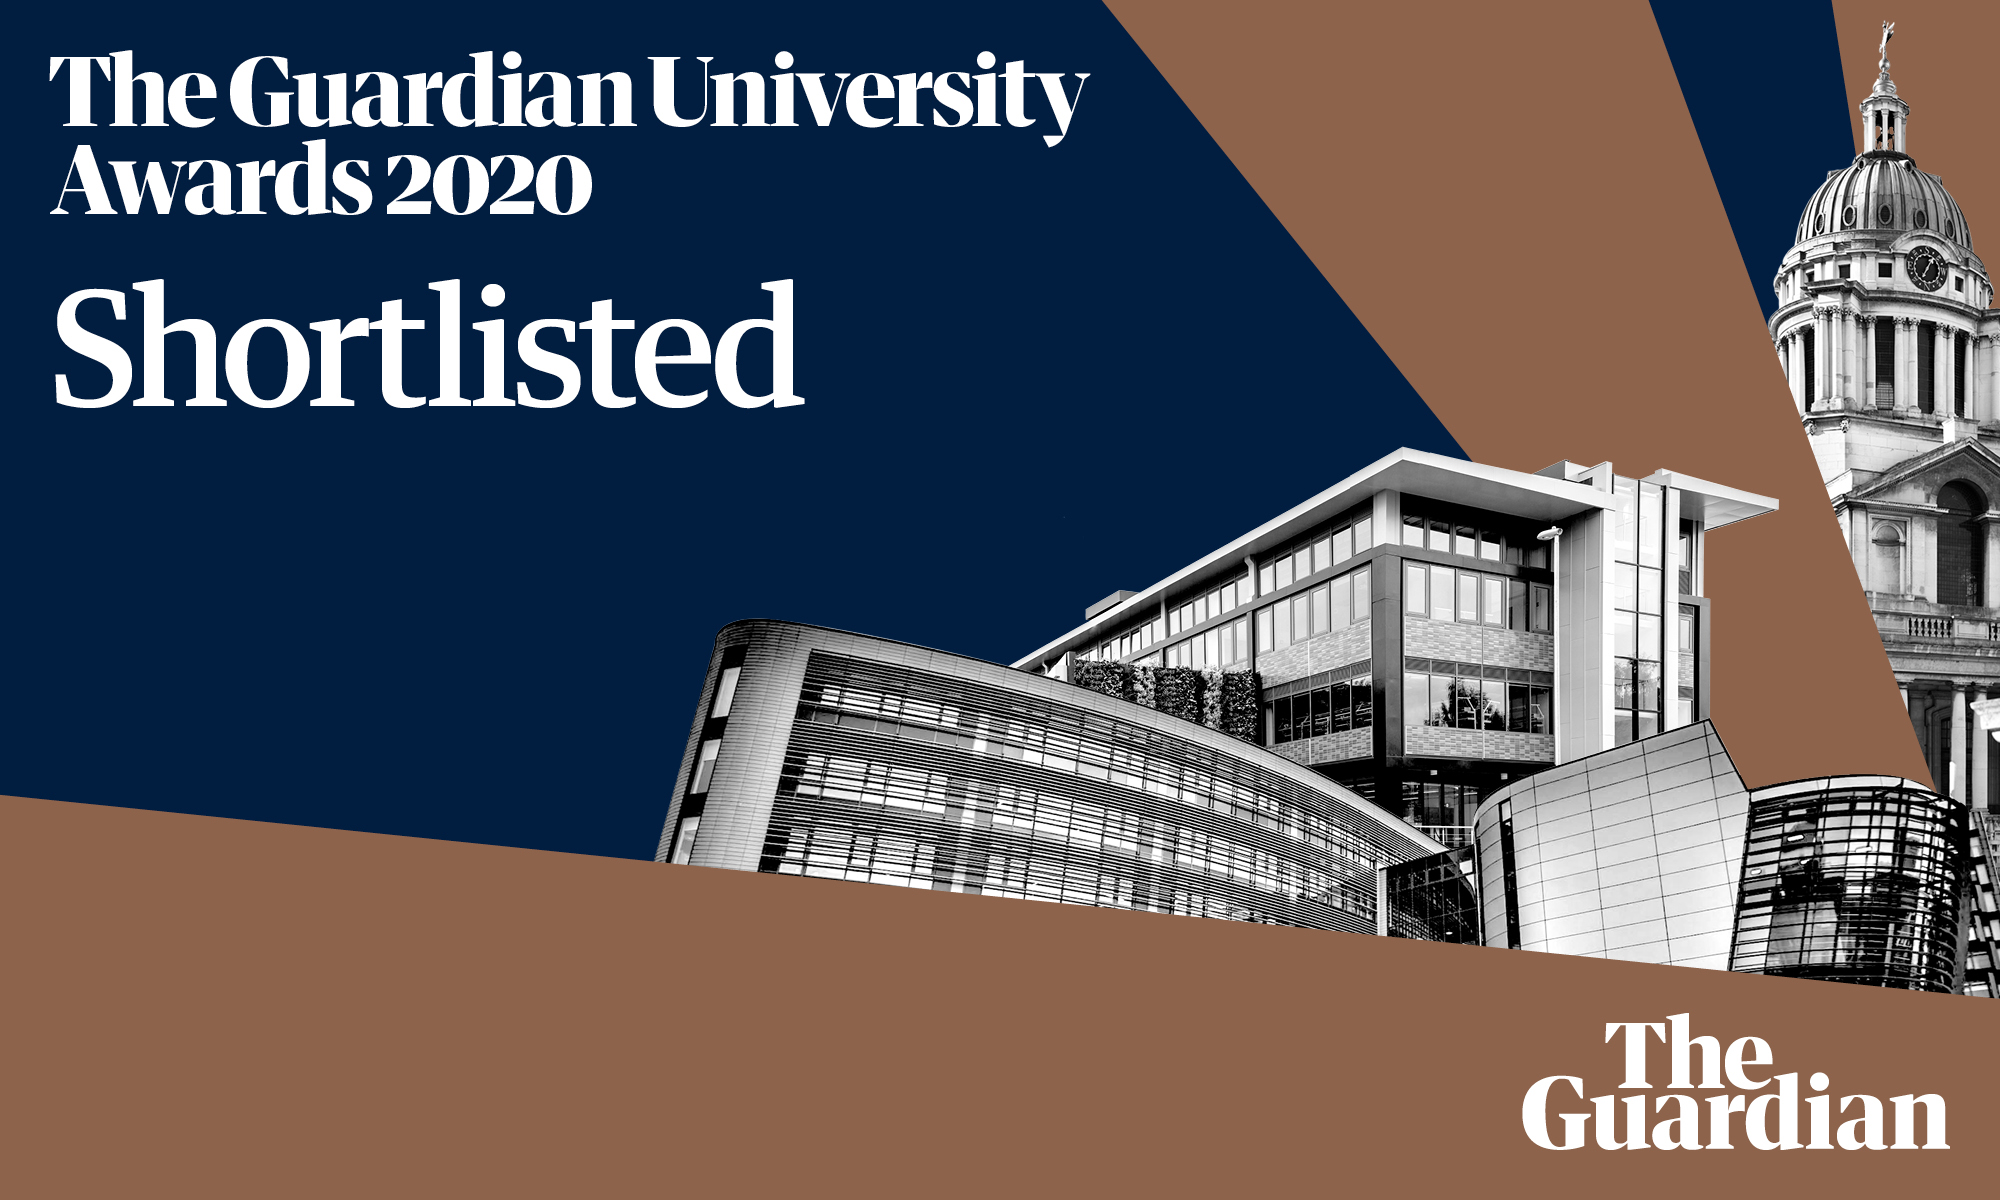 Shortlisted for the Guardian University Awards 2020